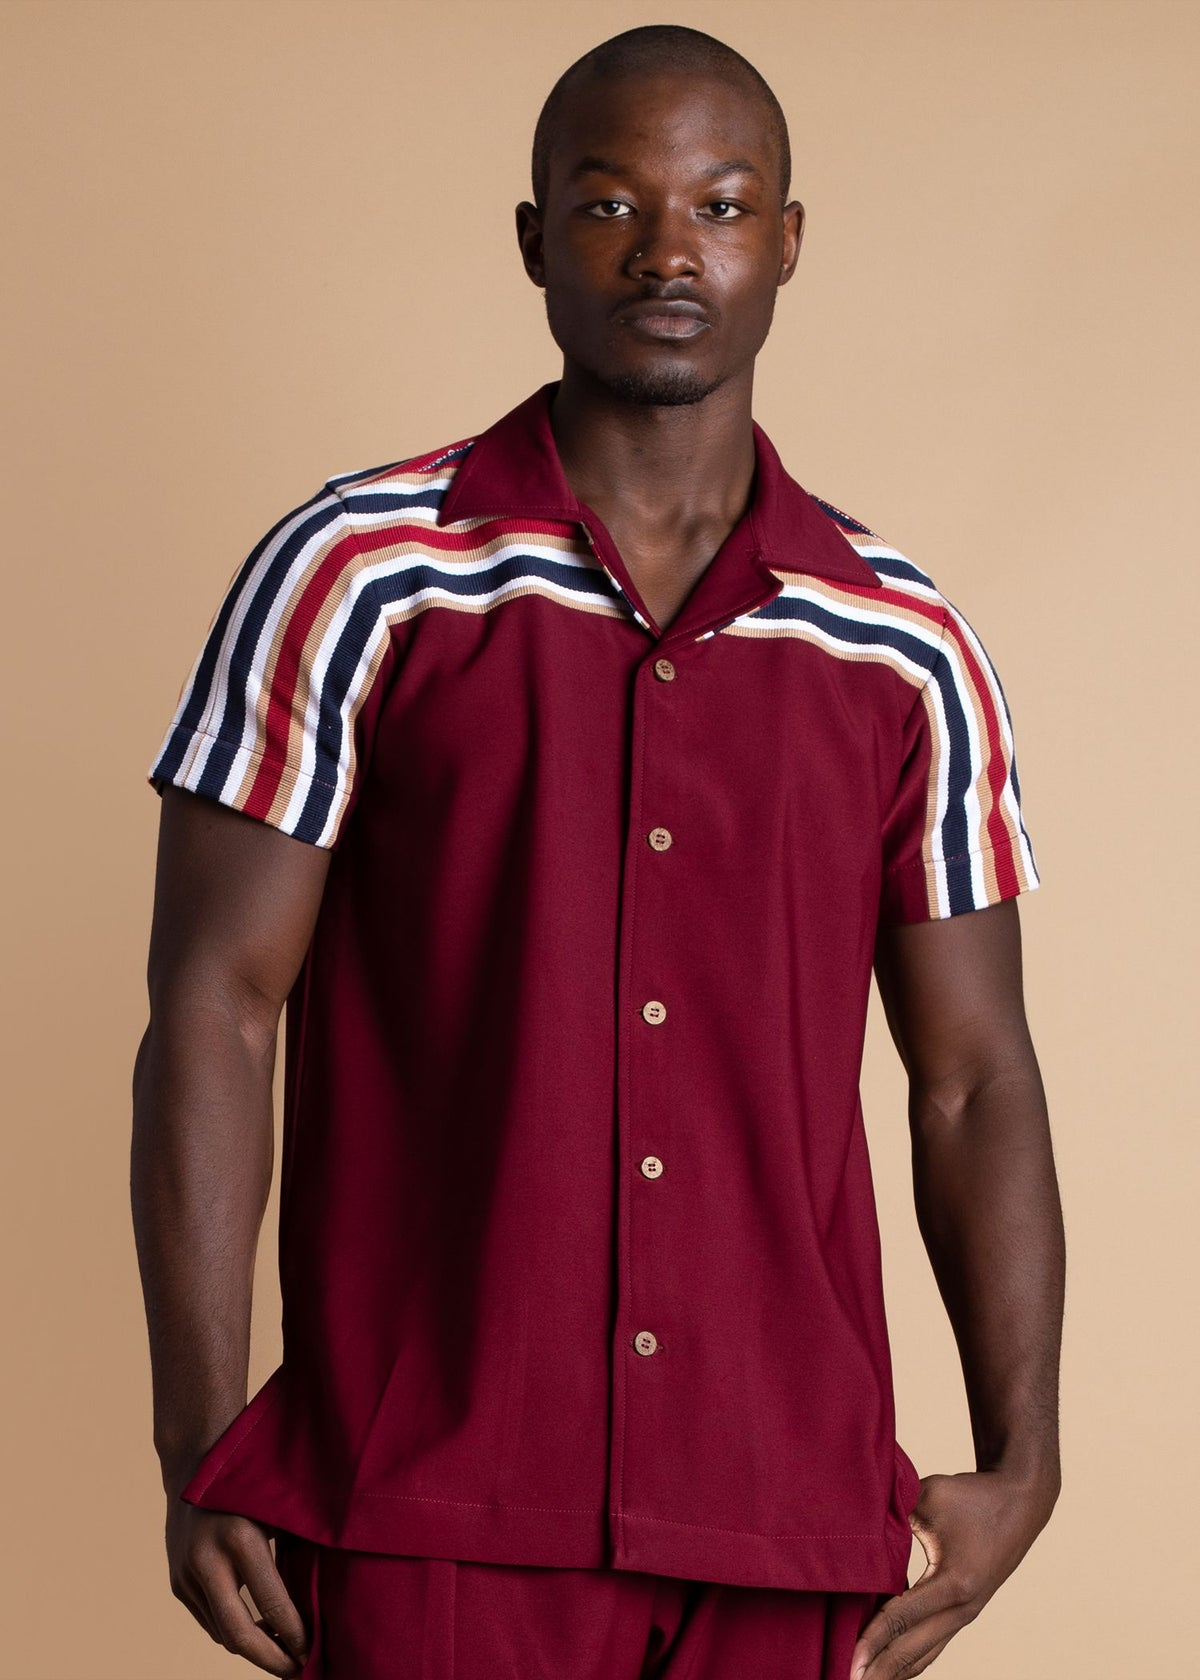 Atto Tetteh Burgundy and Blue Stripe Fugu Shirt